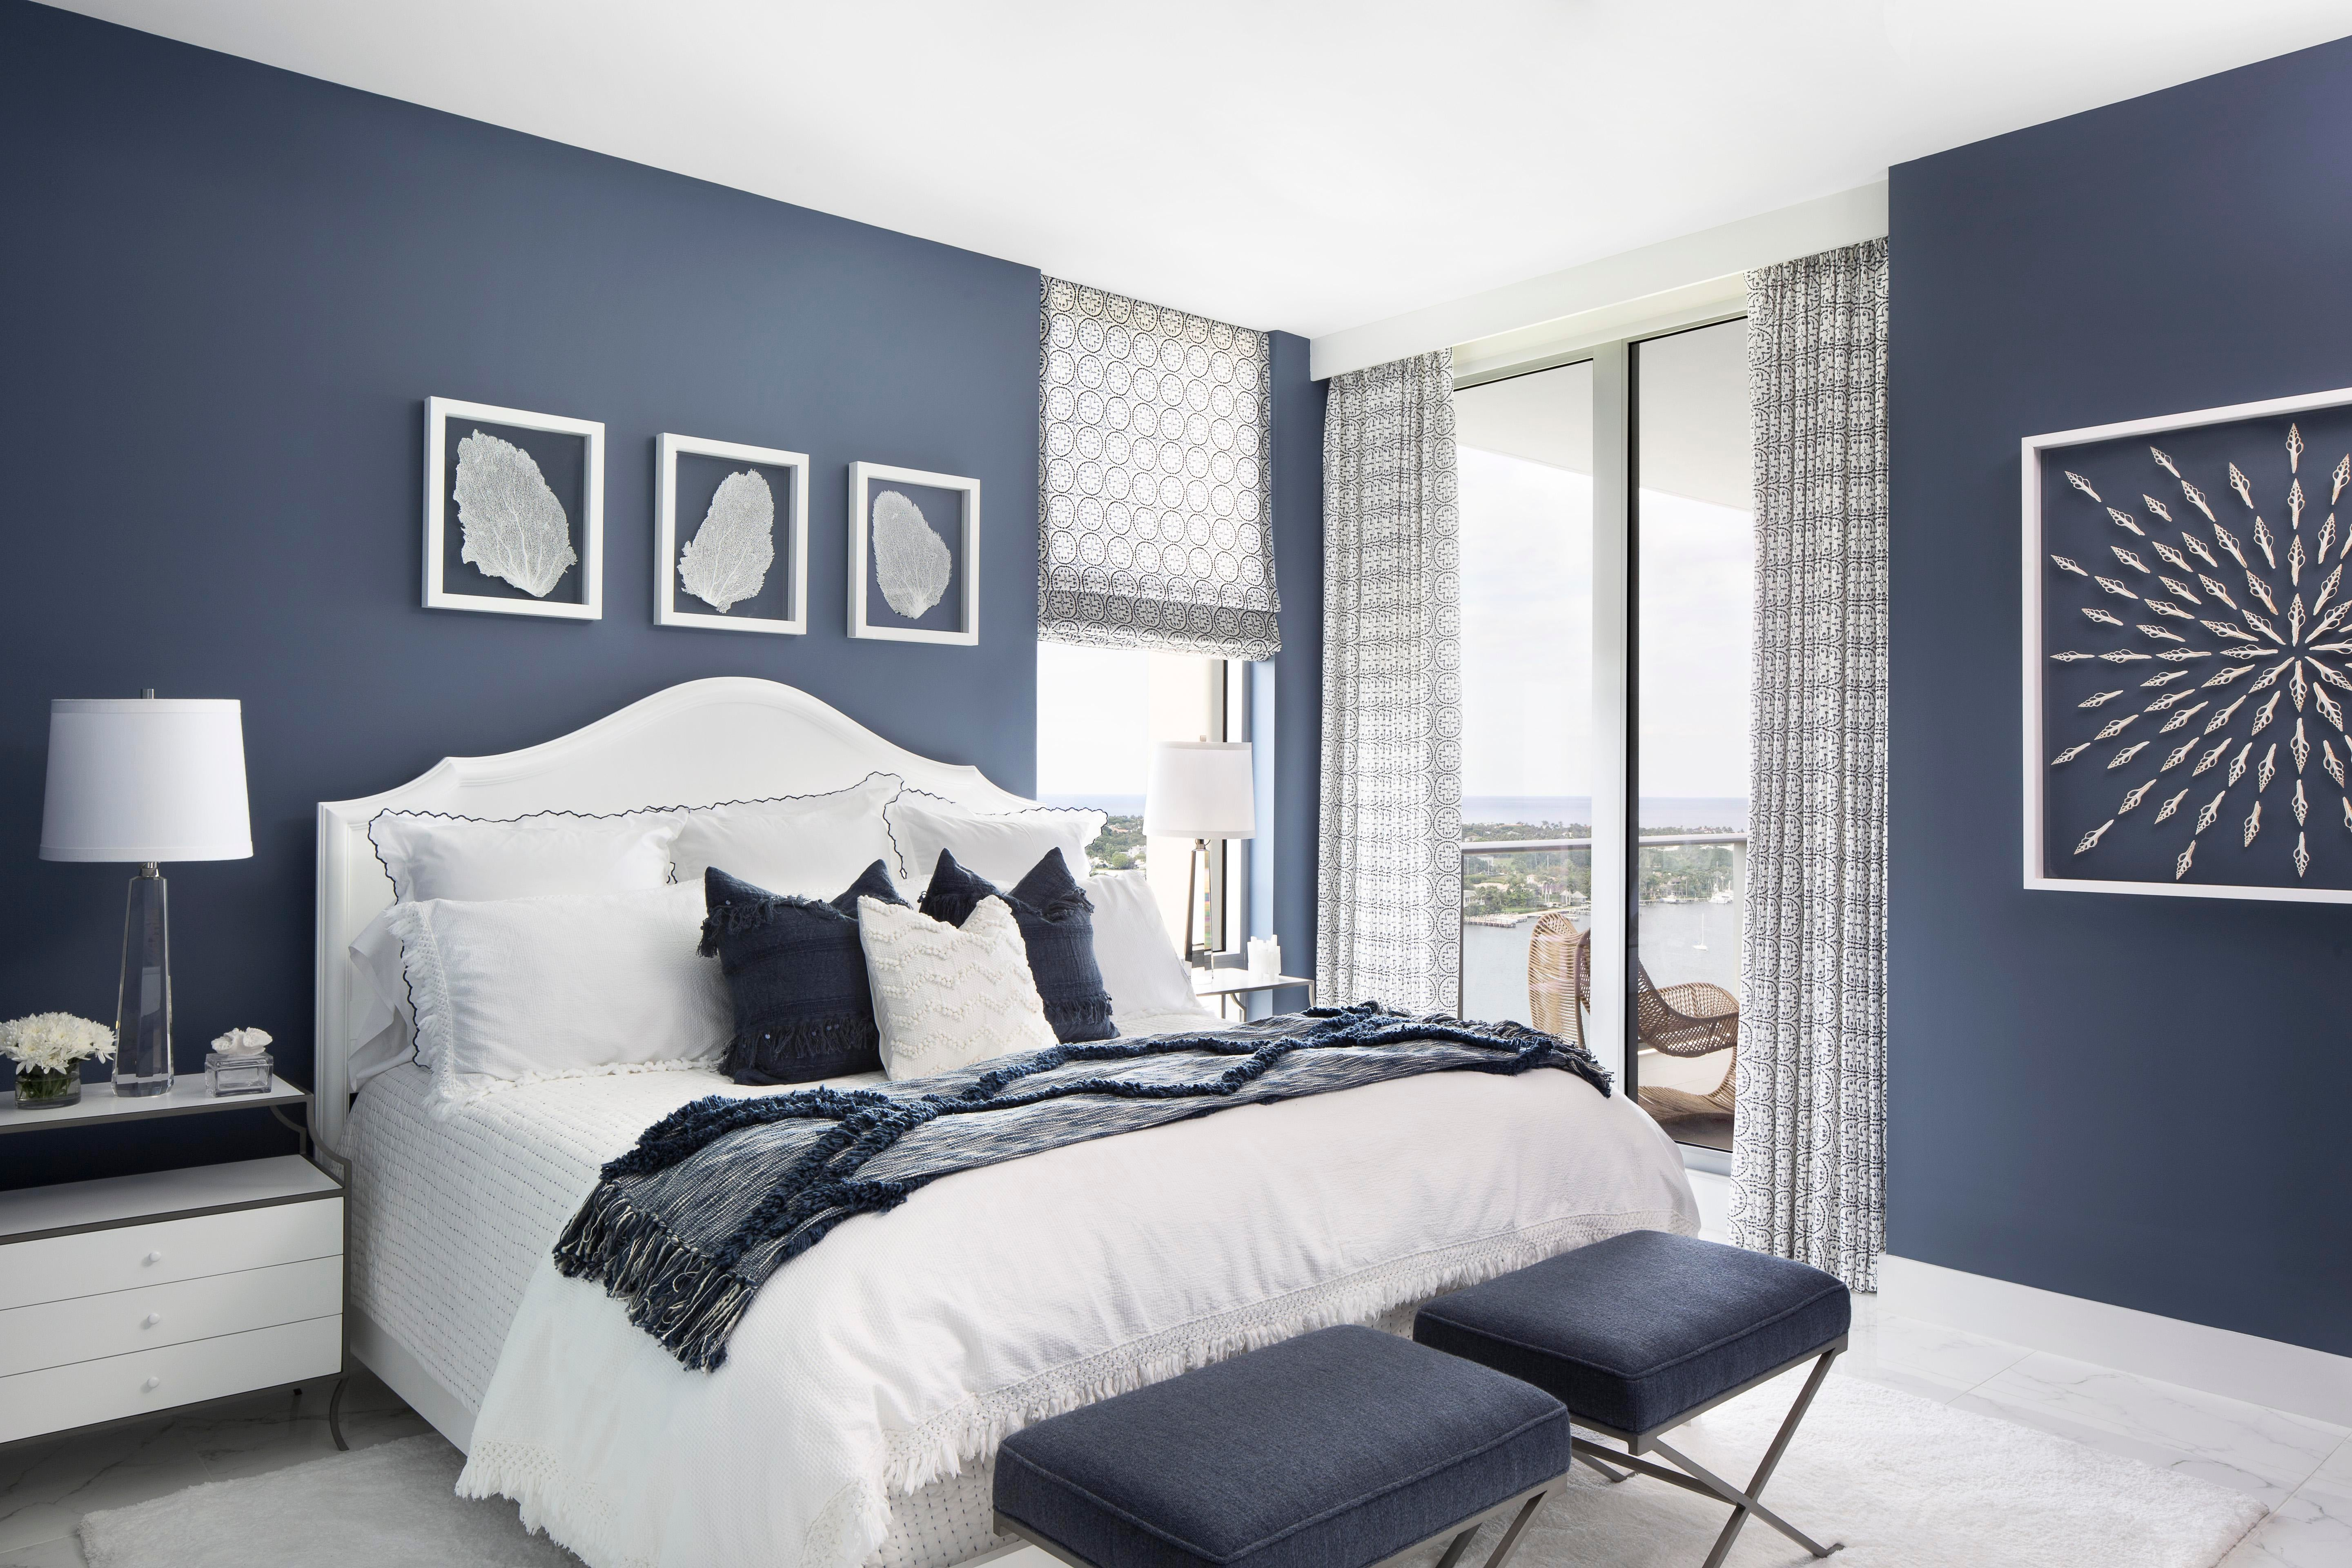 Oceanside Retreat Vacation Residence Bedroom Contemporary Eclectic Coastal  By Lisa Michael Interiors